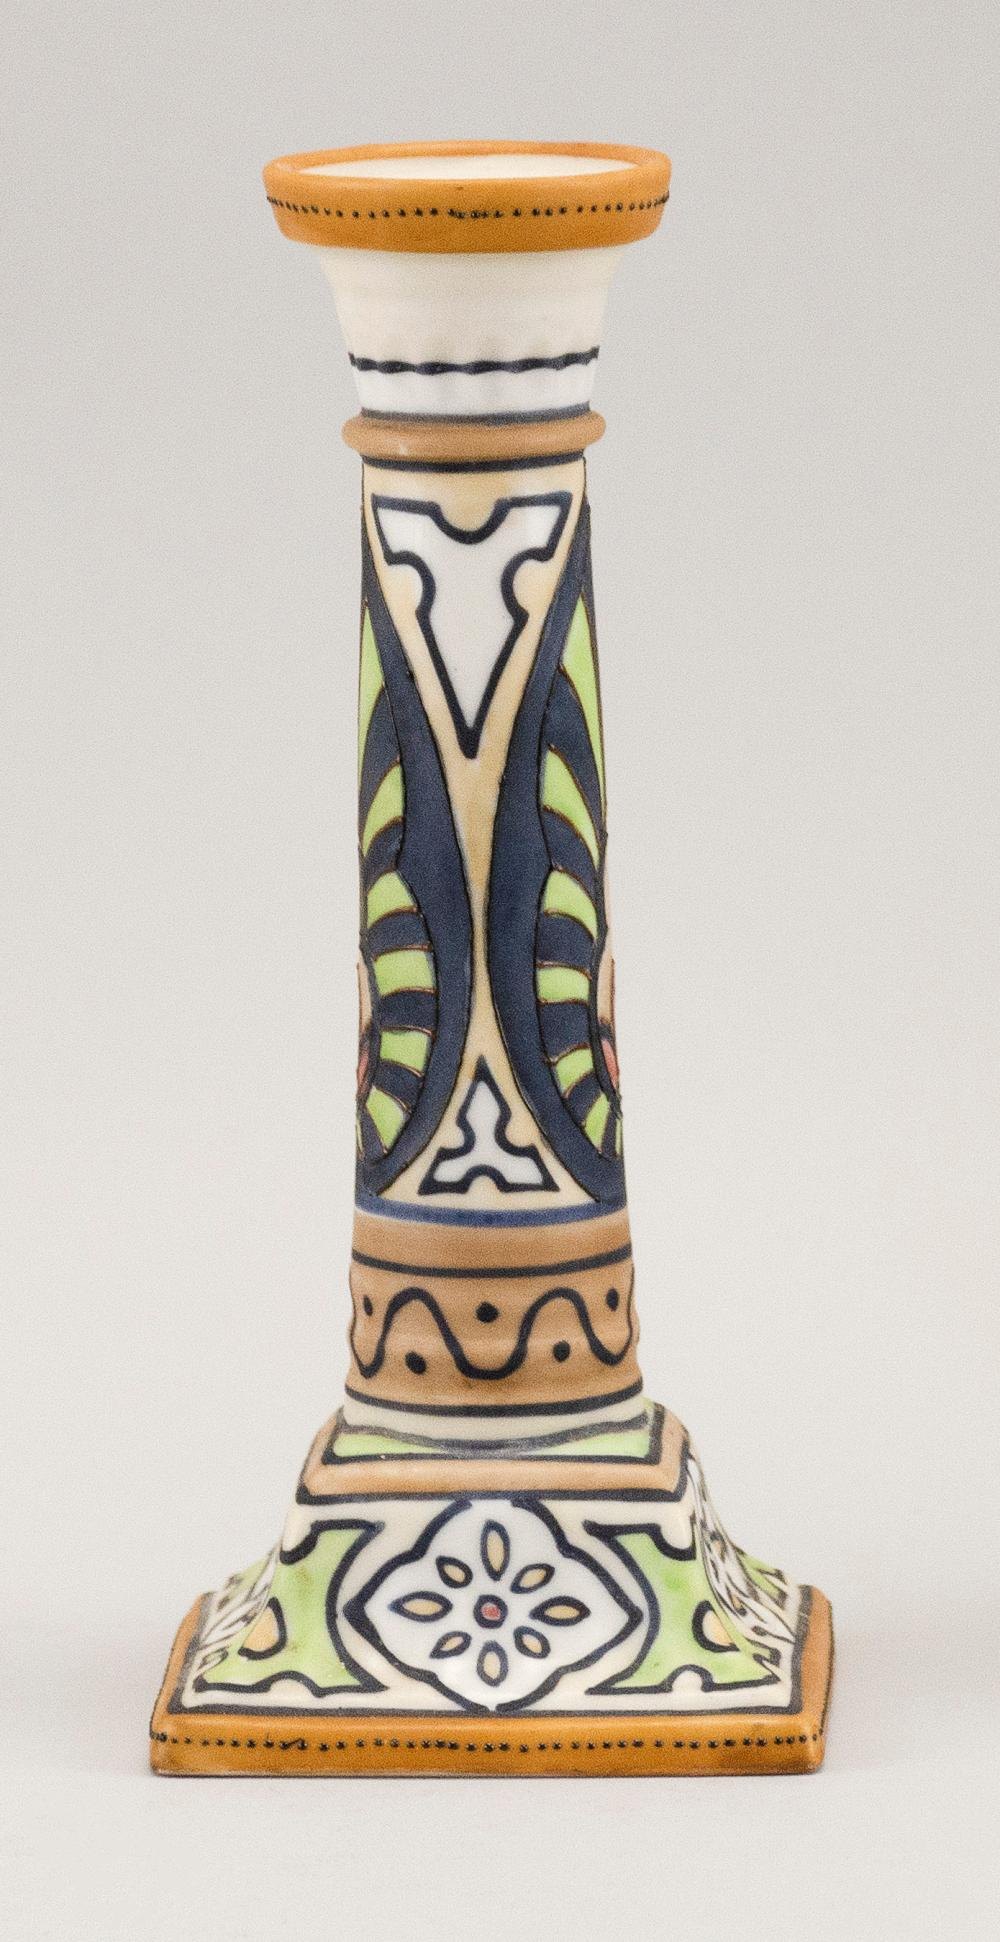 NIPPON PORCELAIN CANDLESTICK With Art Deco-style decoration. Van Patten #47 mark on base. Height 7.5